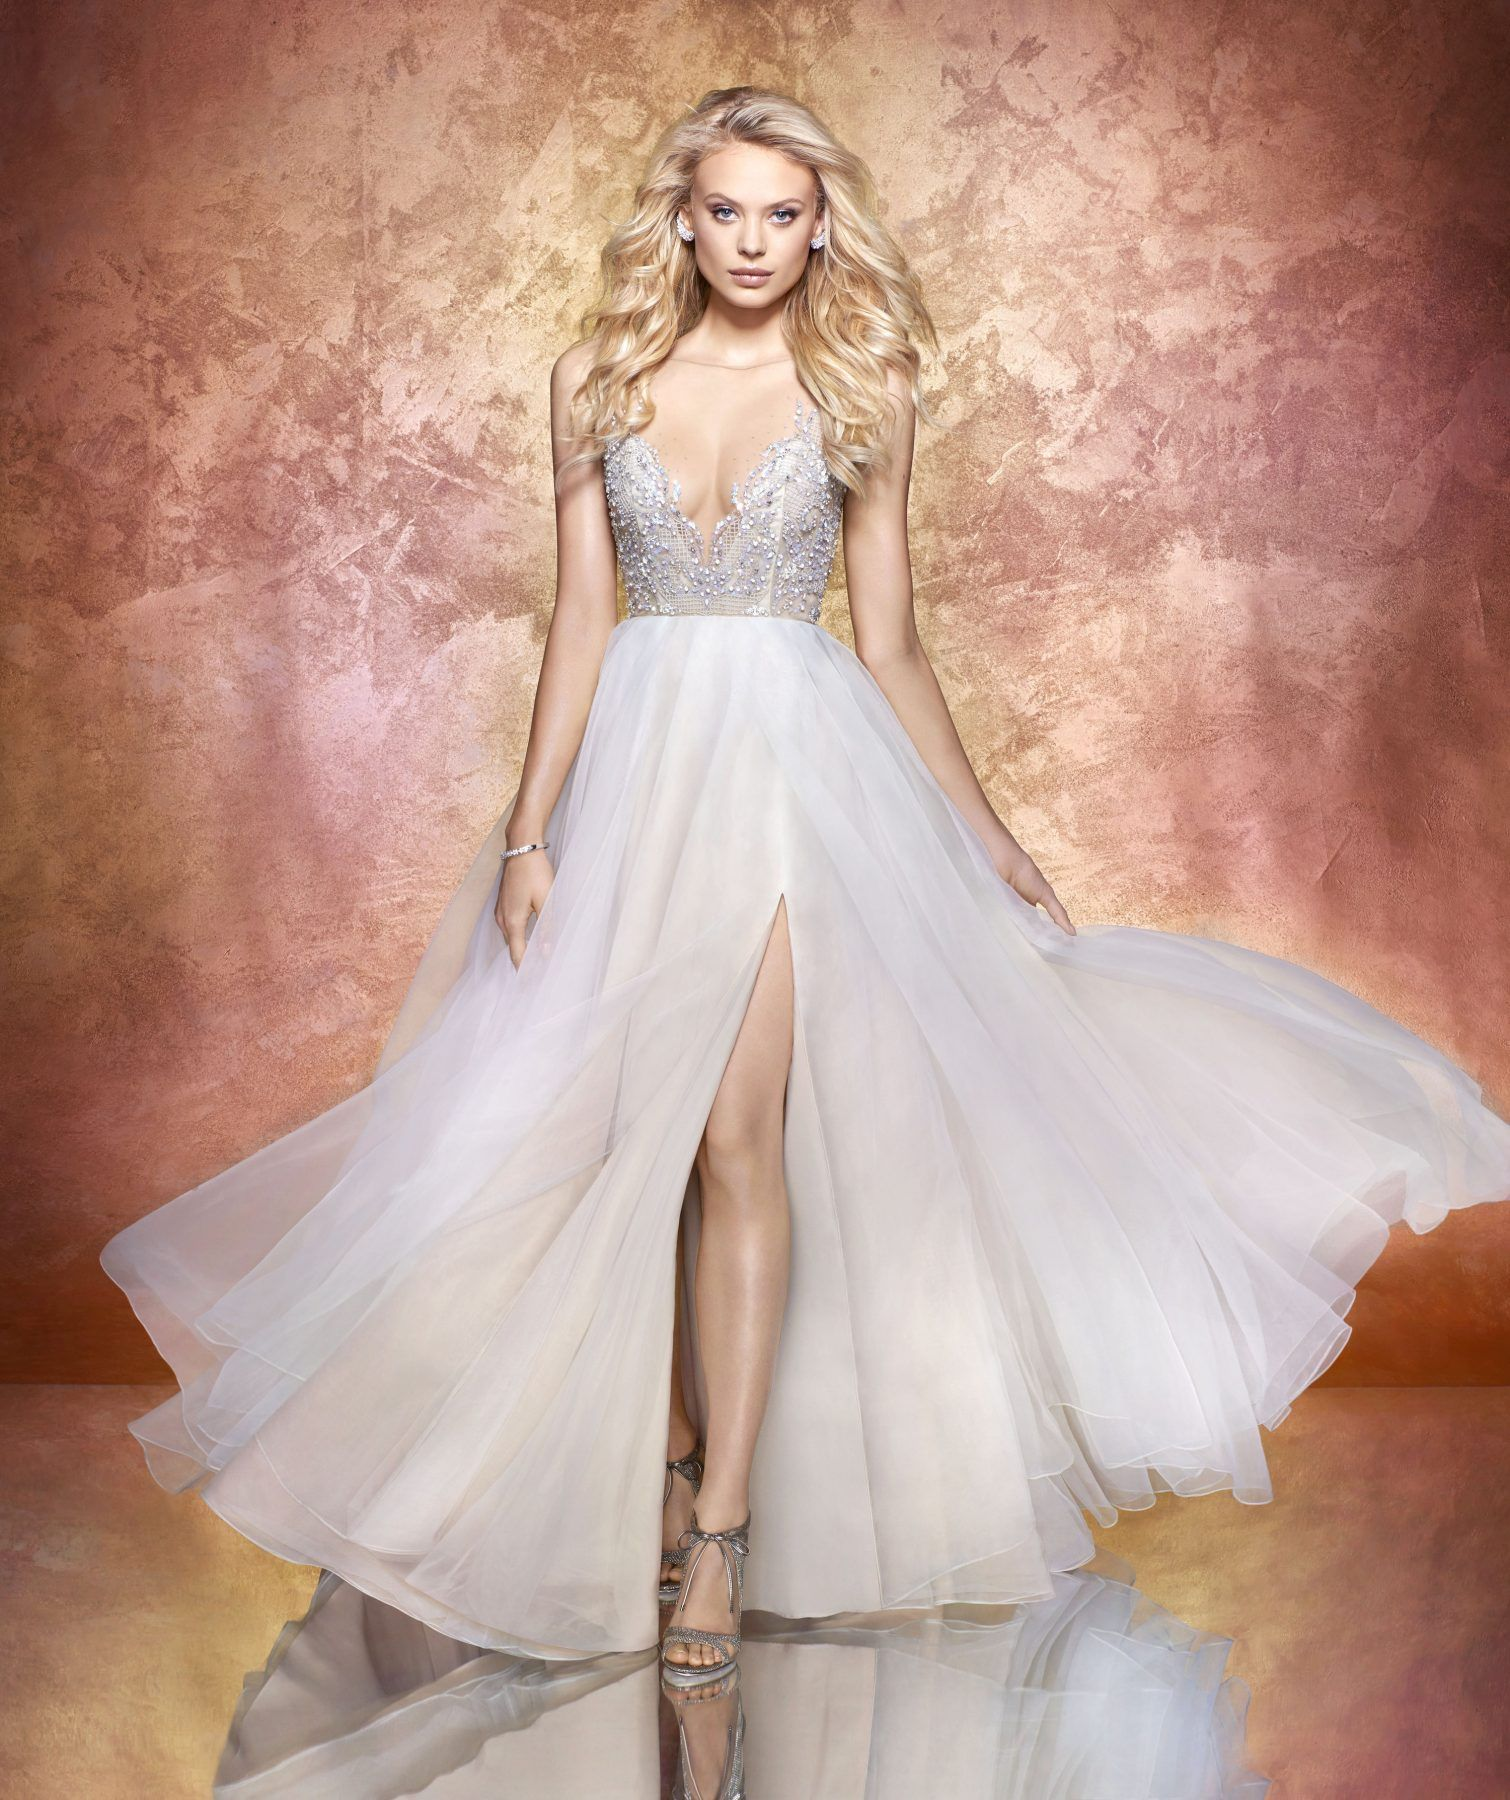 a3d91c0f633b Trendy A-line Wedding Dress by Hayley Paige - Image 1 zoomed in ...